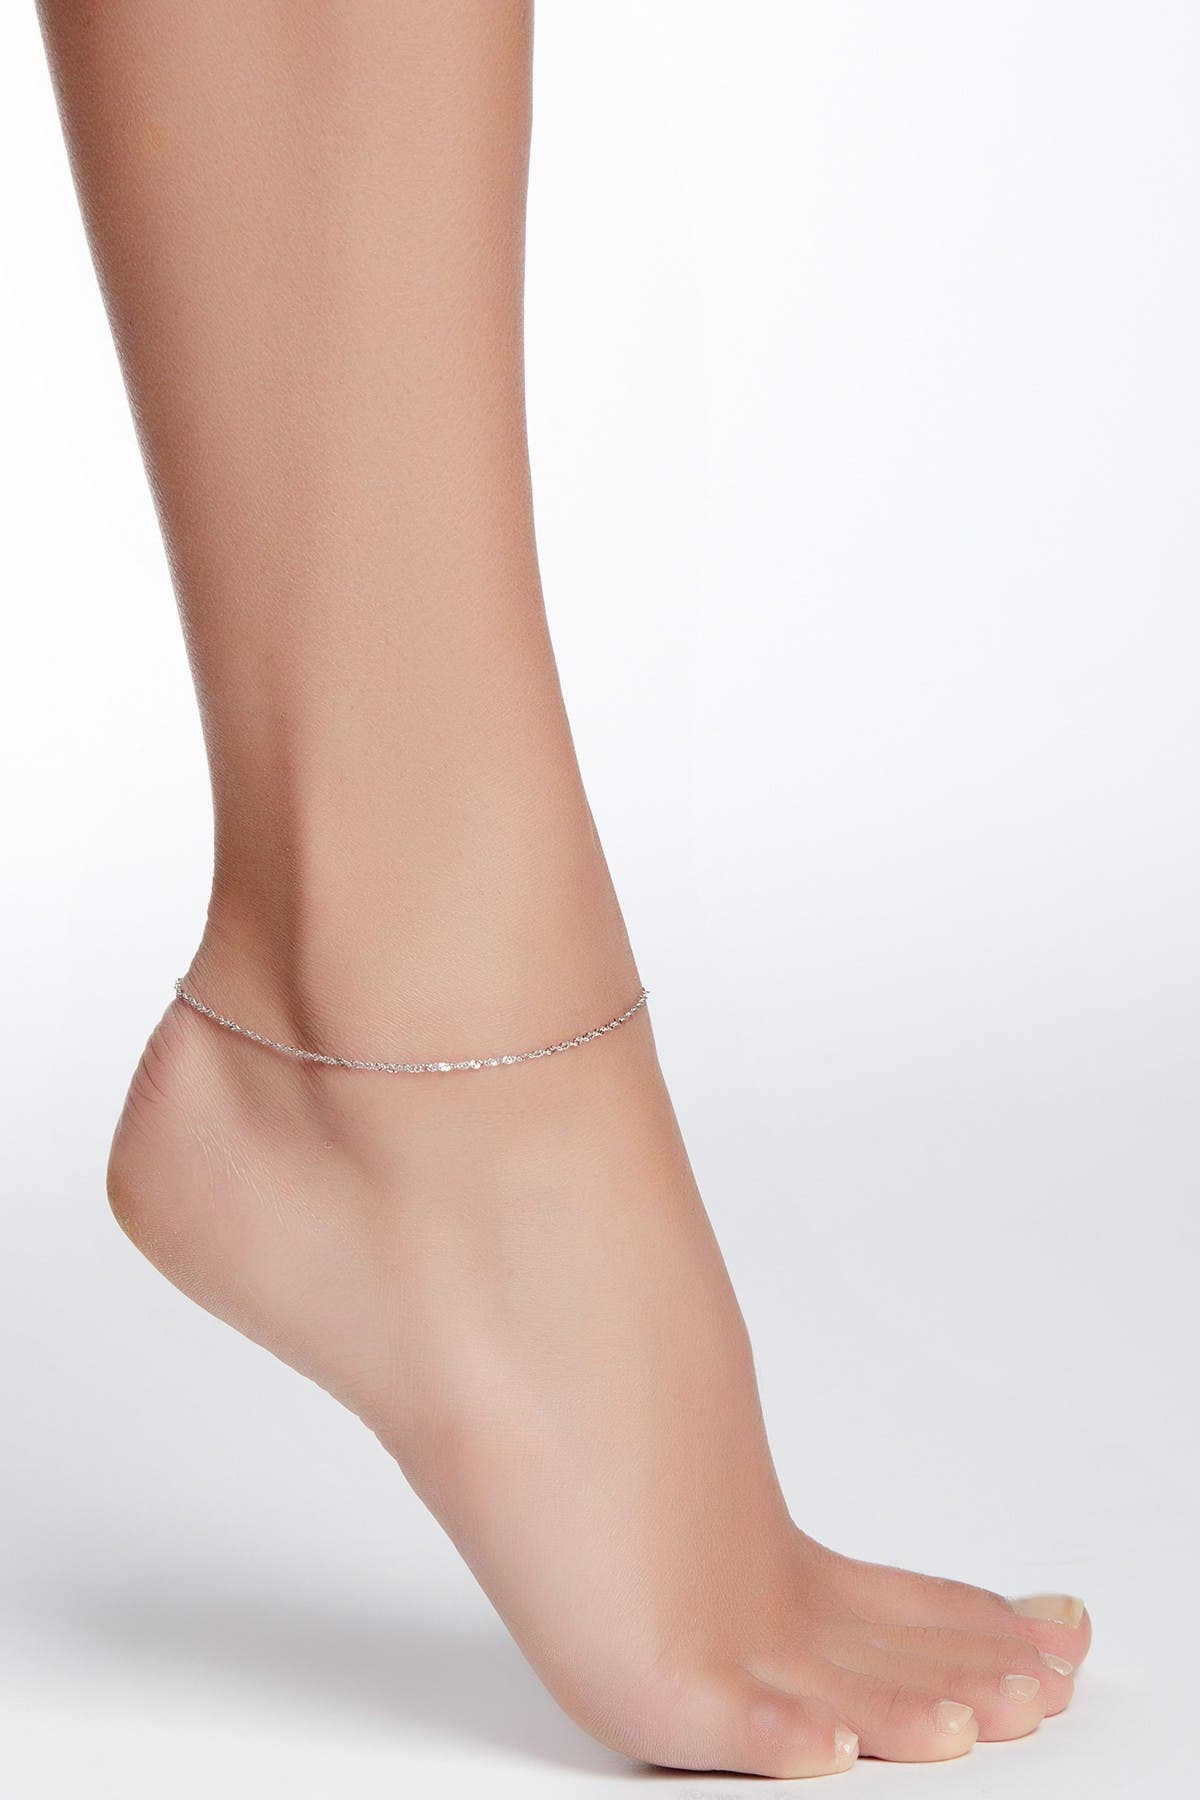 Image of KARAT RUSH 14K White Gold Chain Anklet